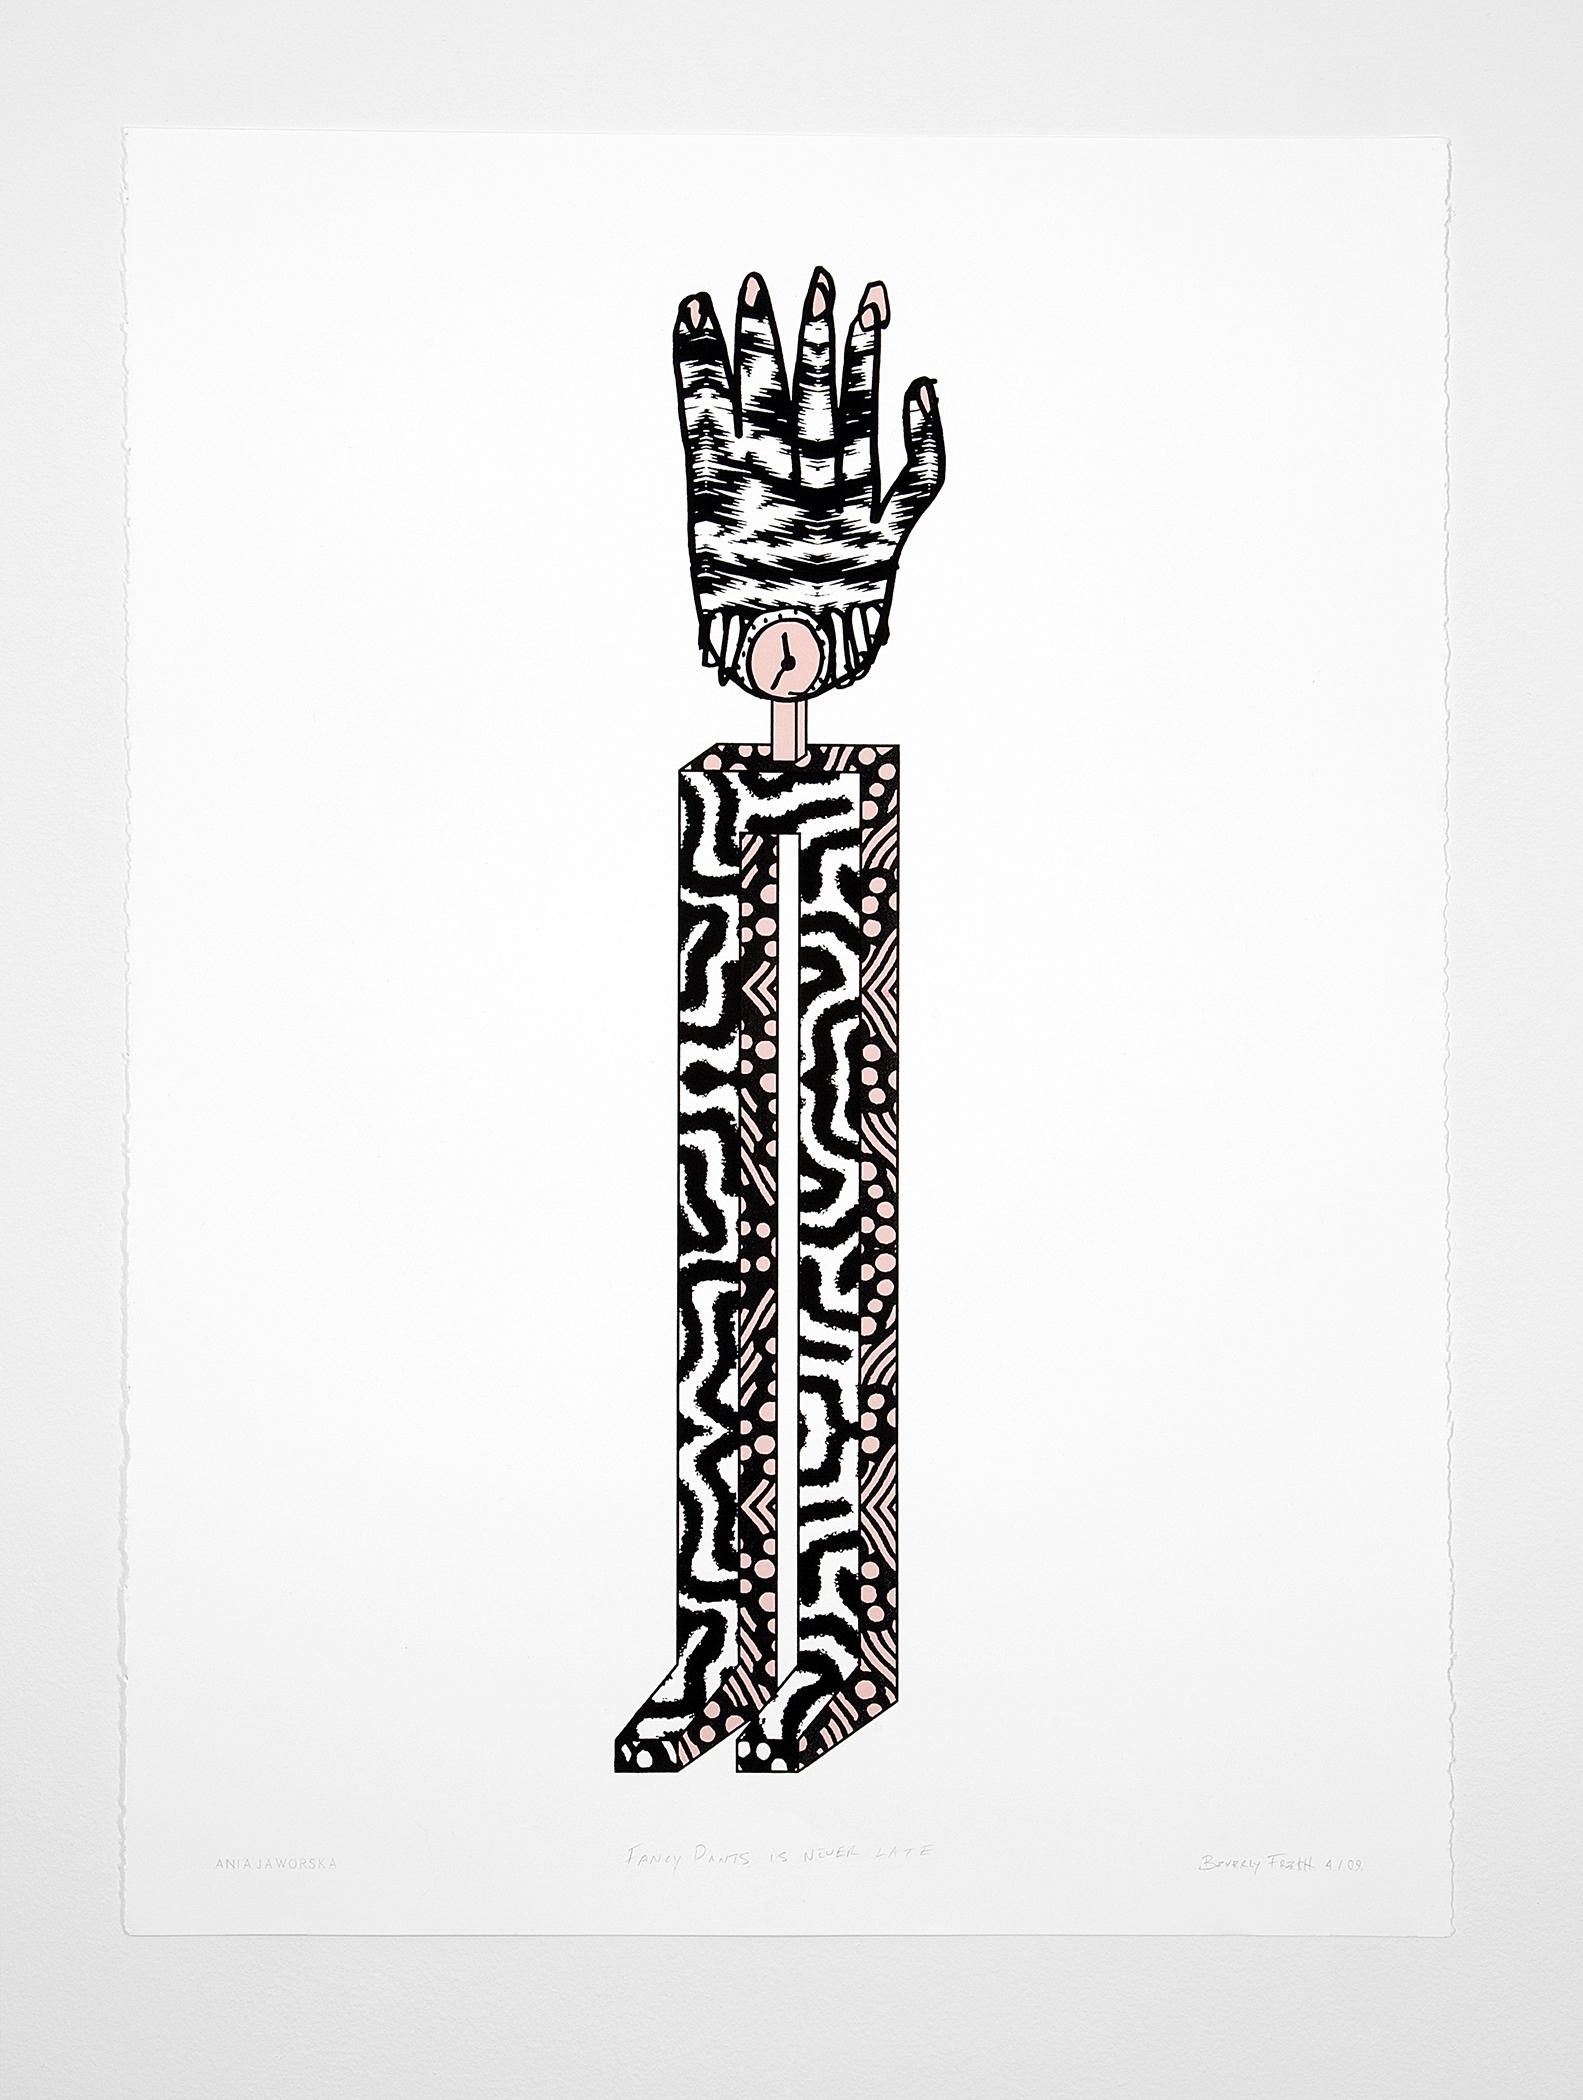 A black, white, and pink print shows a tall, rectilinear pedestal resembling legs, covered in patterned prints and topped by a striped human hand wearing a wristwatch